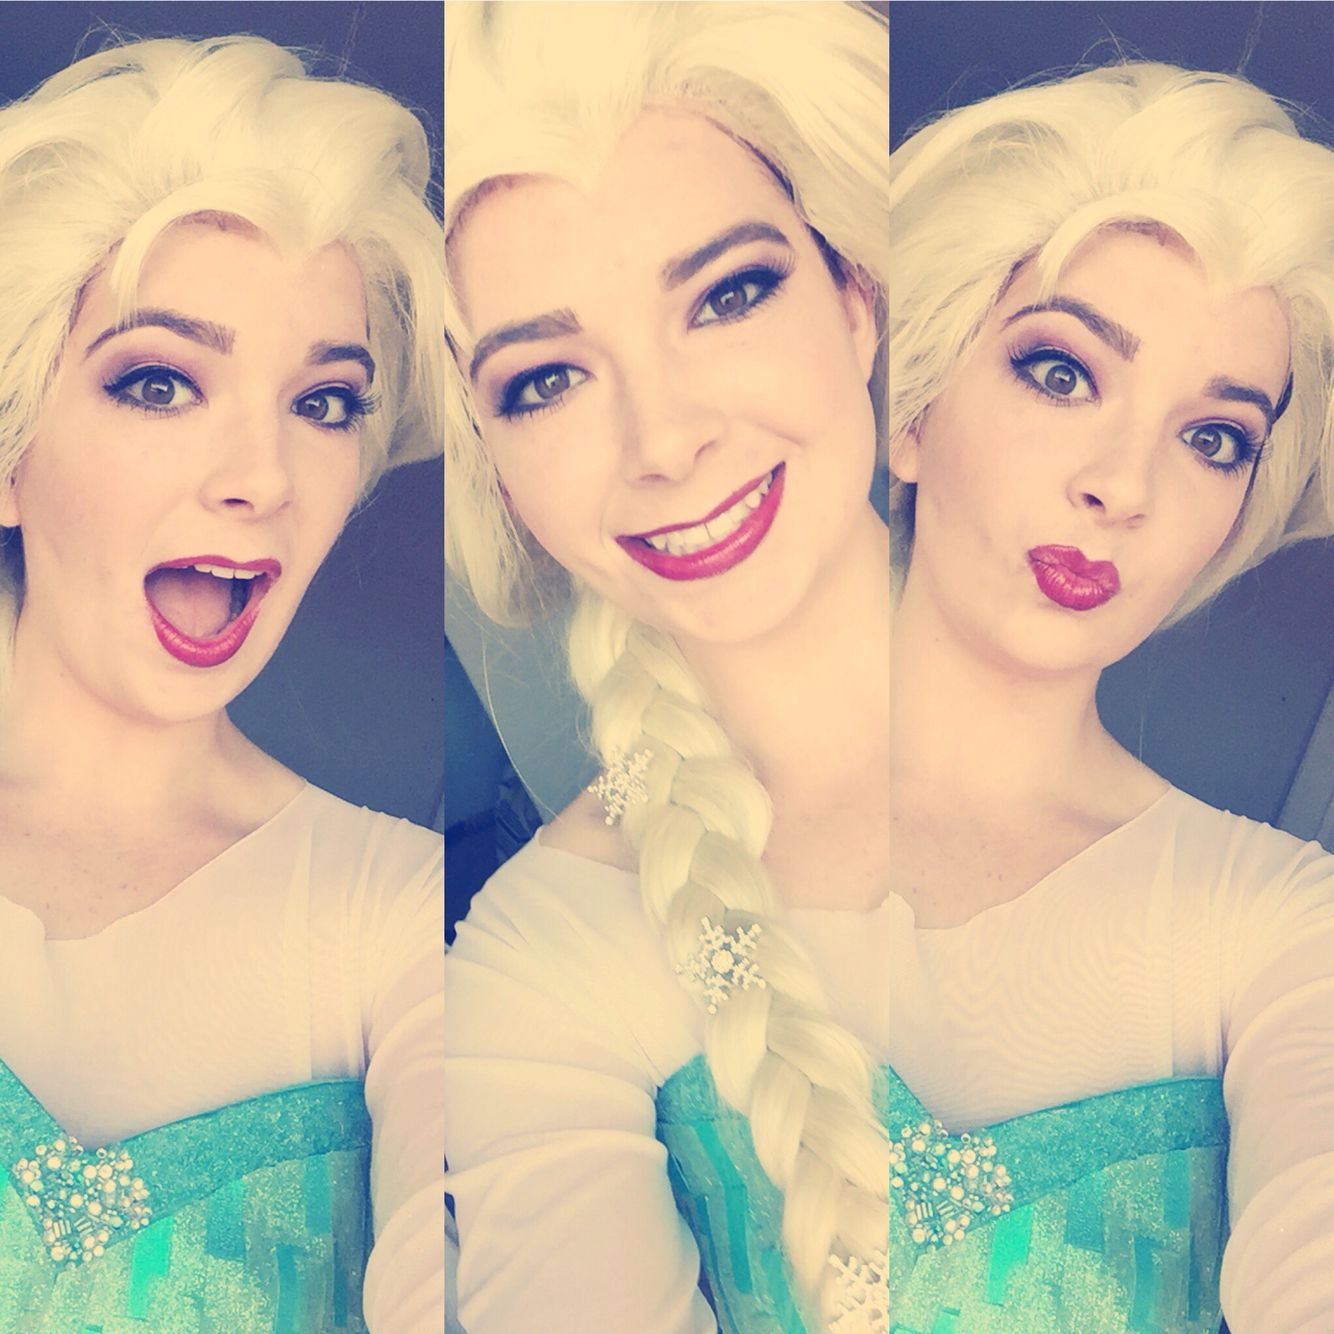 Being Elsa was more fun than being me